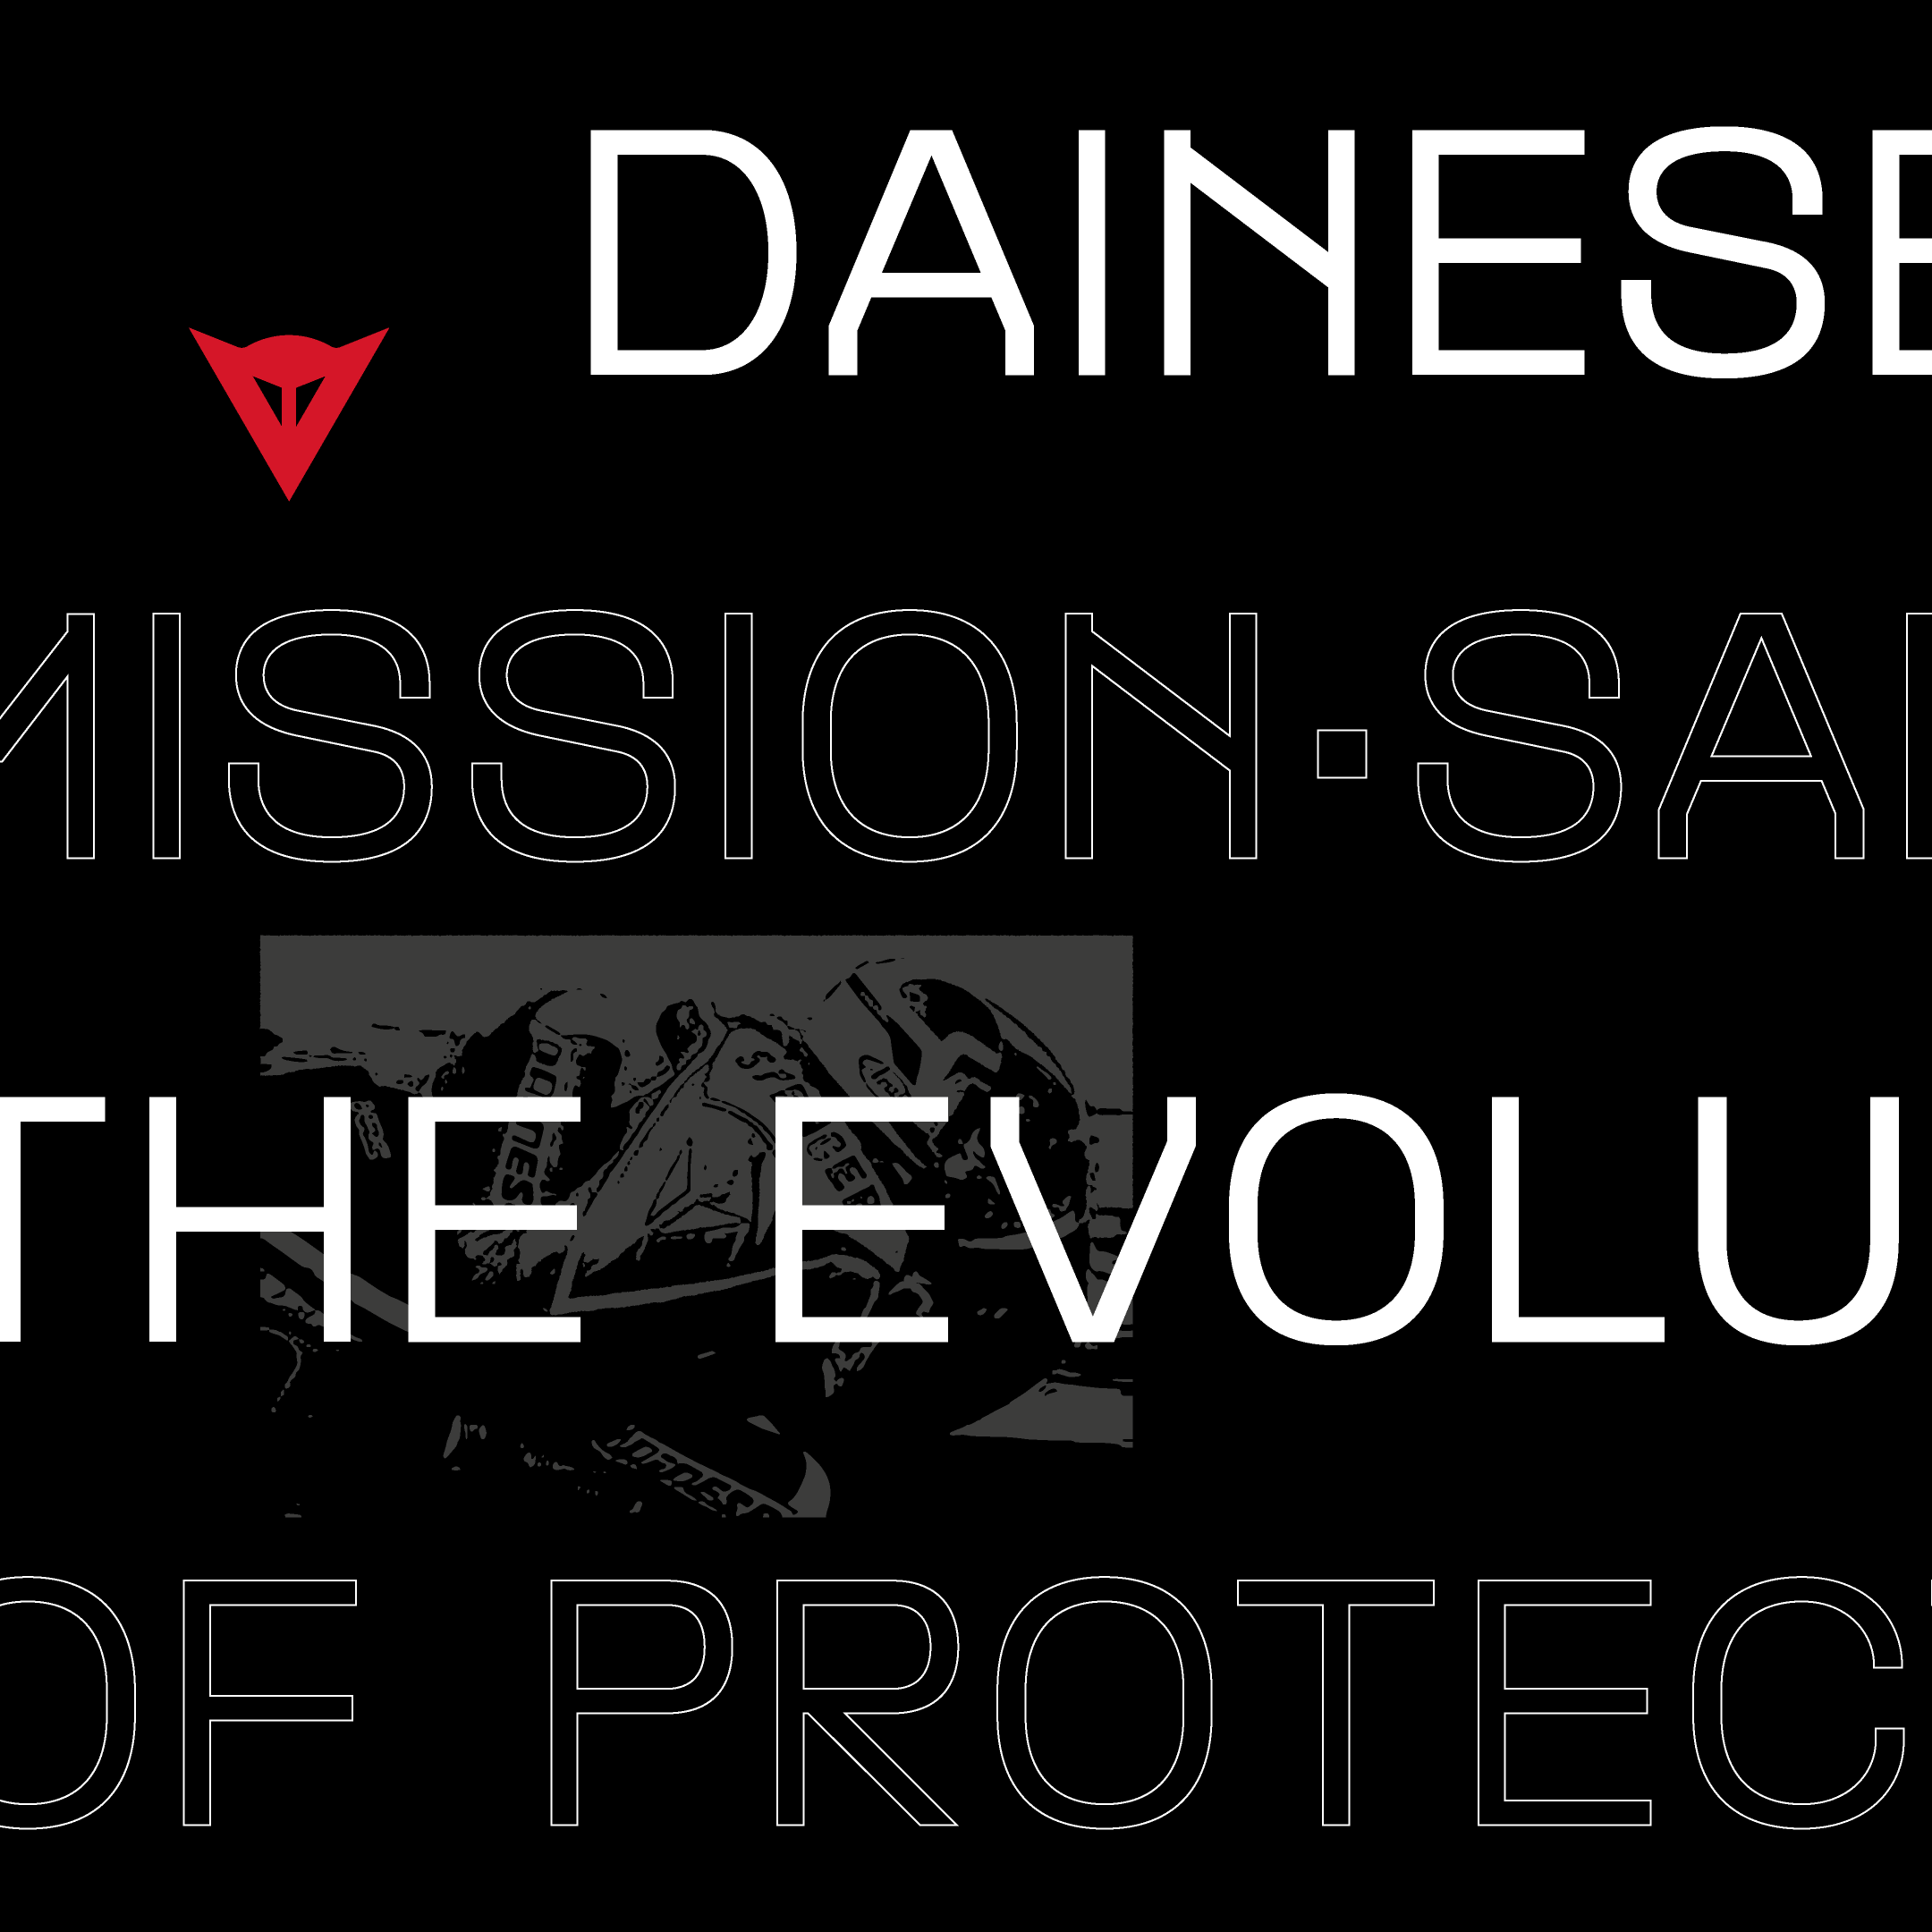 Dainese Scudo Custom Font Featured Image